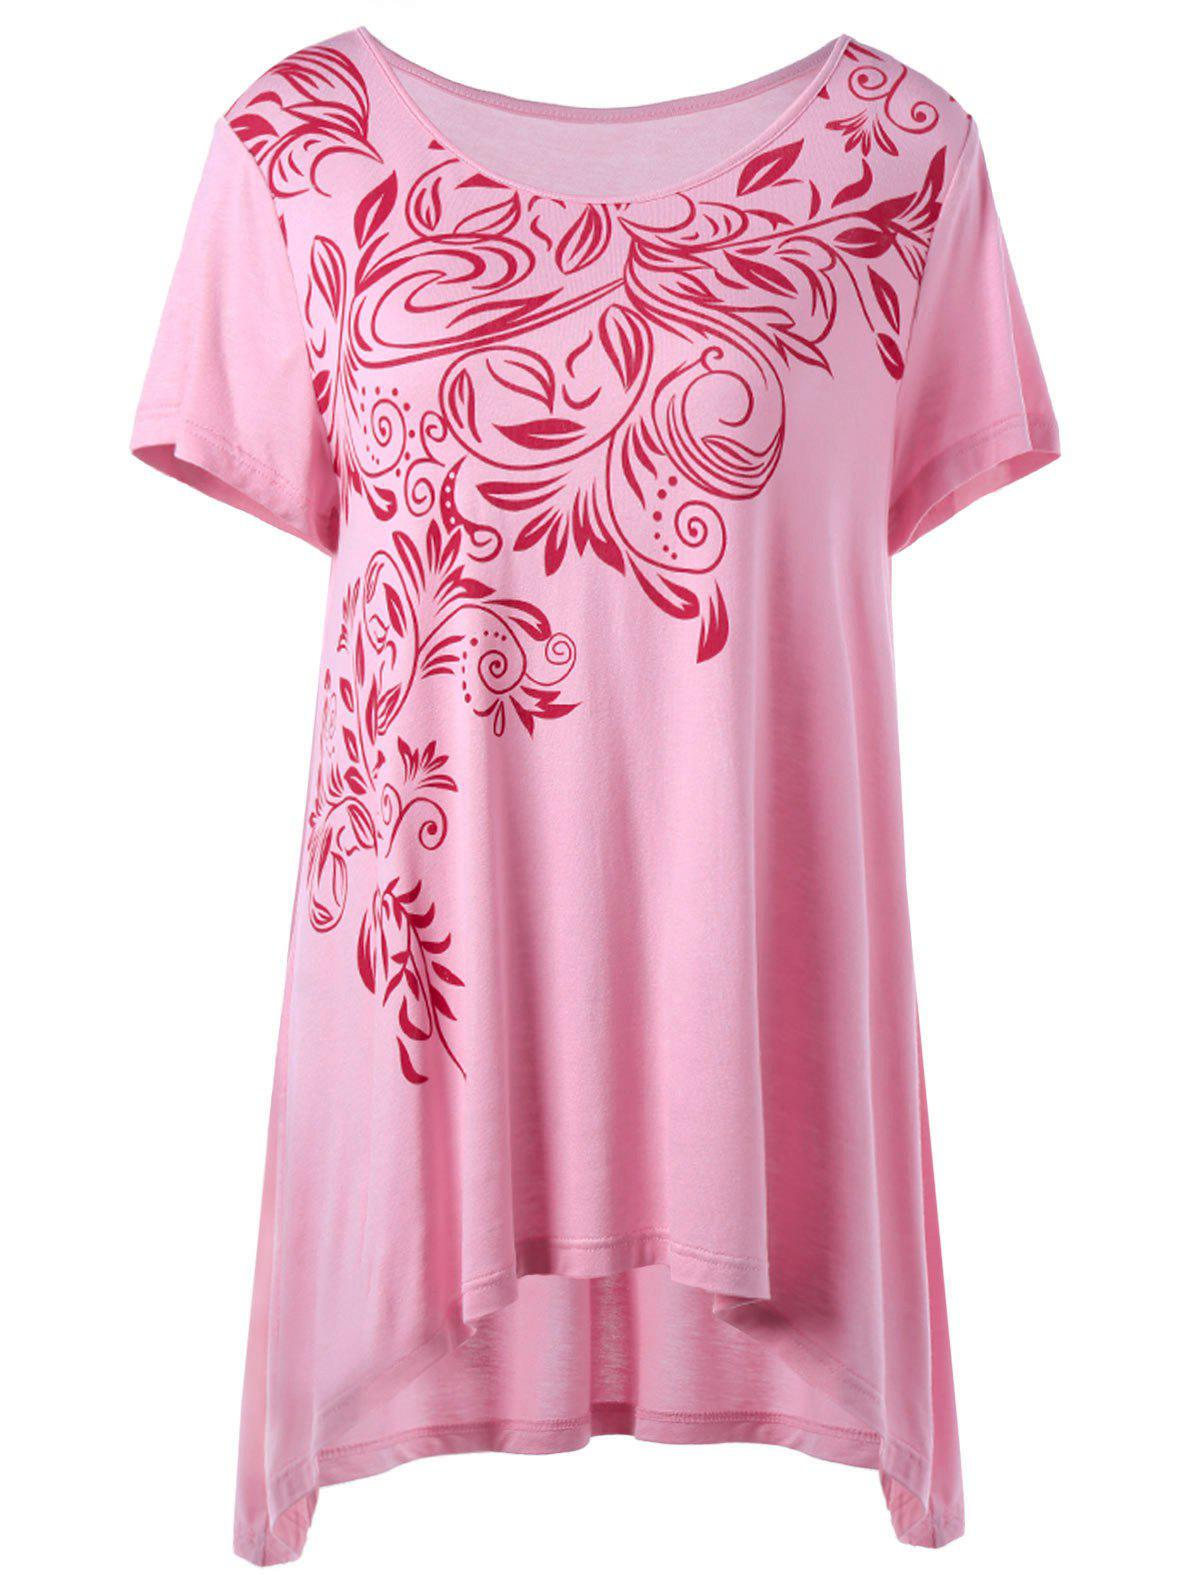 2018 Plus Size Bandana Floral High Low Hem T Shirt Pink Xl